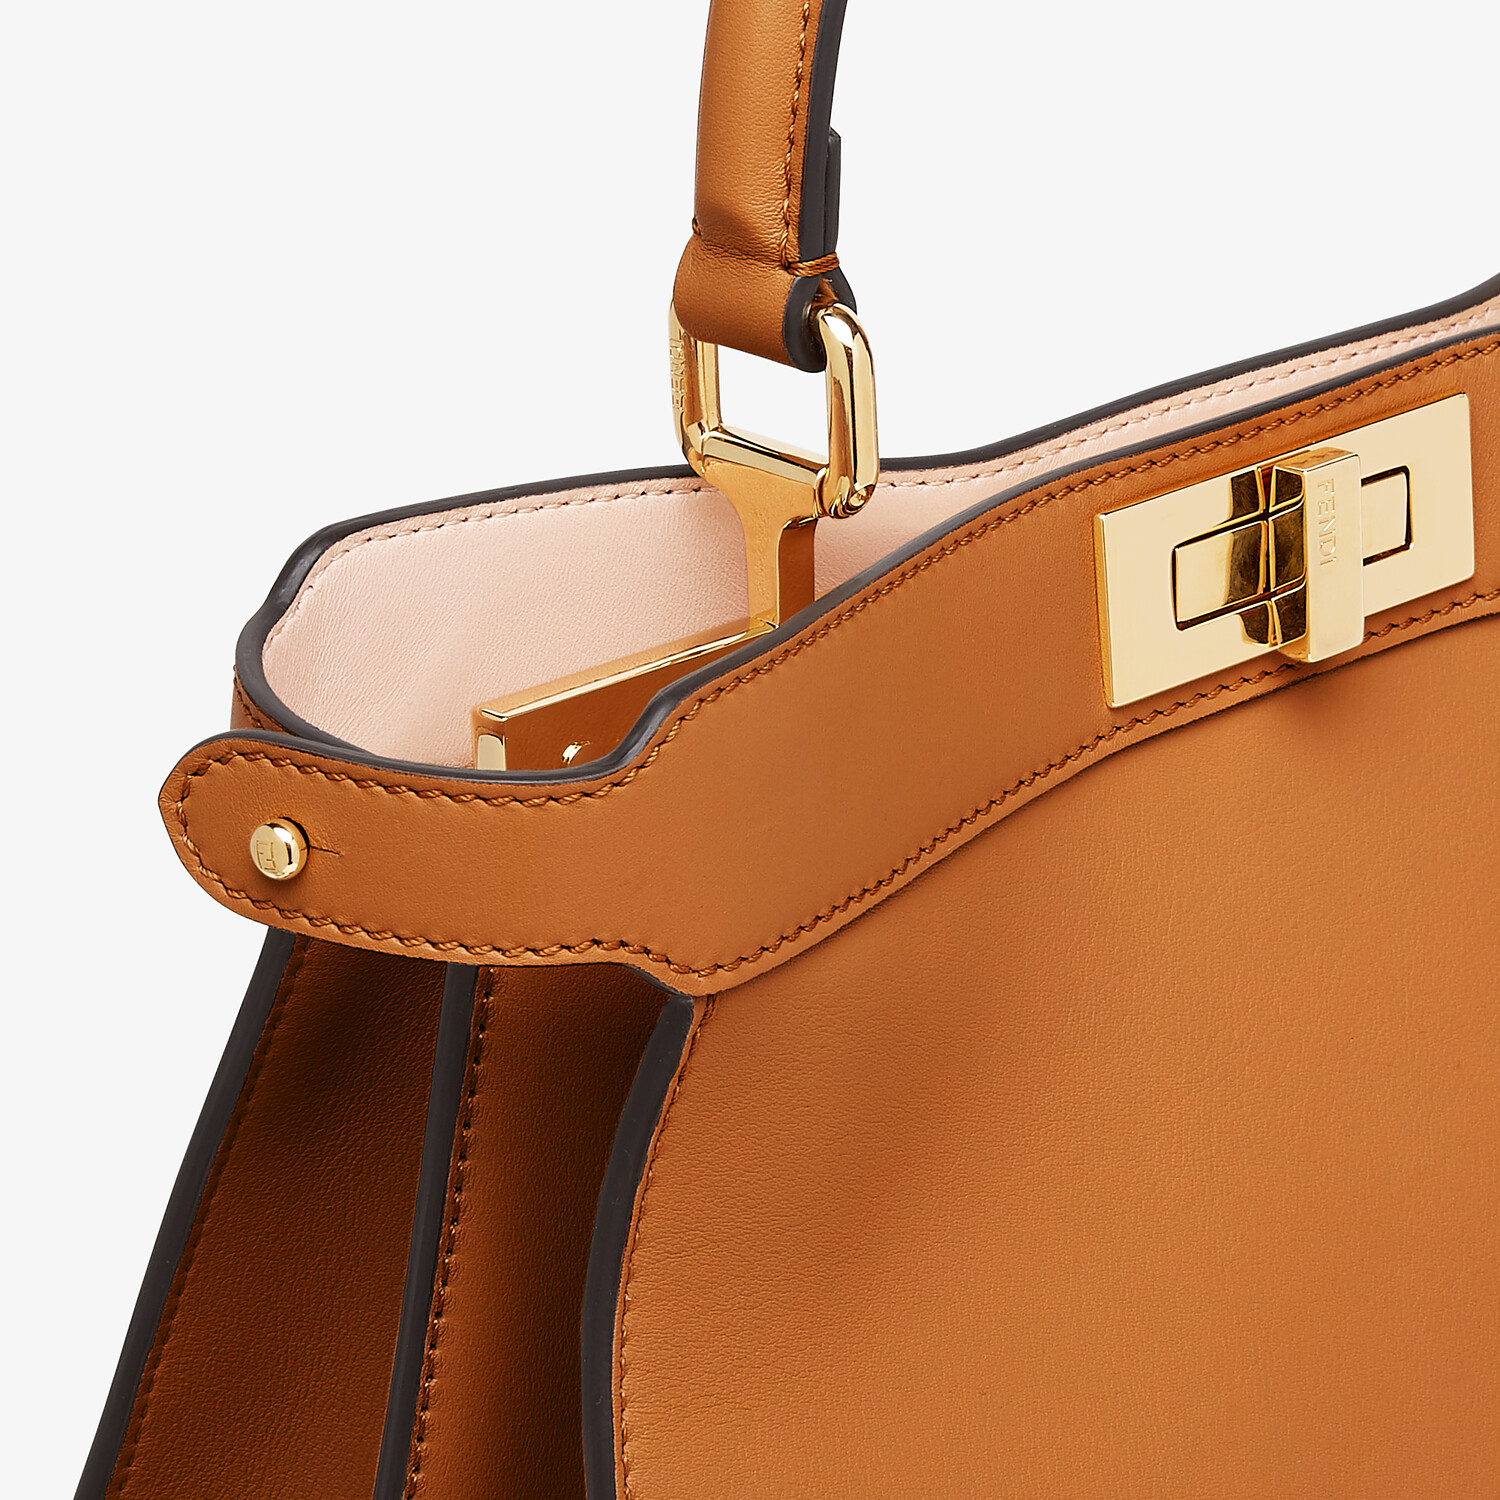 FENDI PEEKABOO ISEEU MEDIUM -  Brown leather bag - view 7 detail